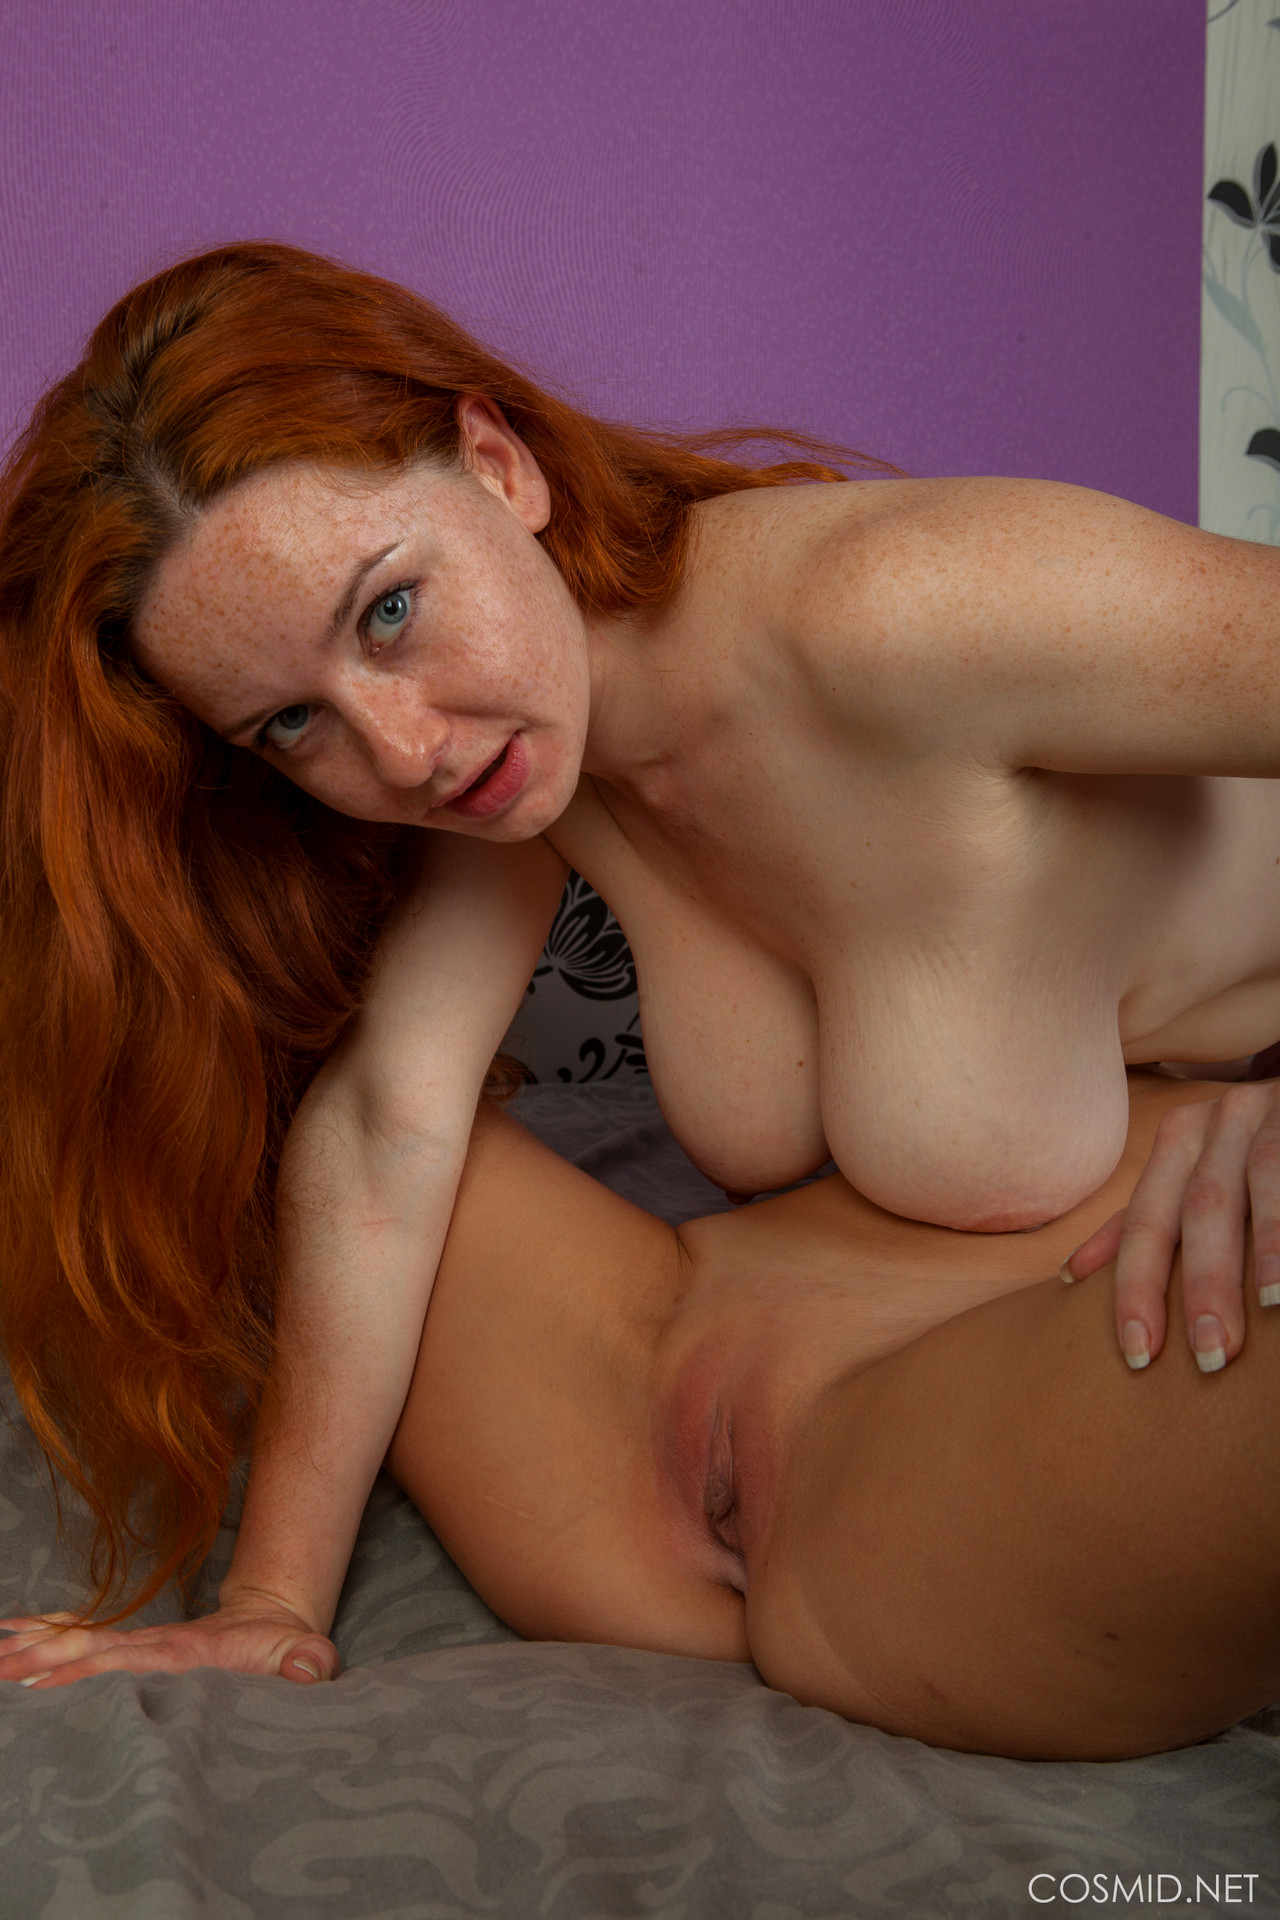 RedHead Babes pic galleries is??